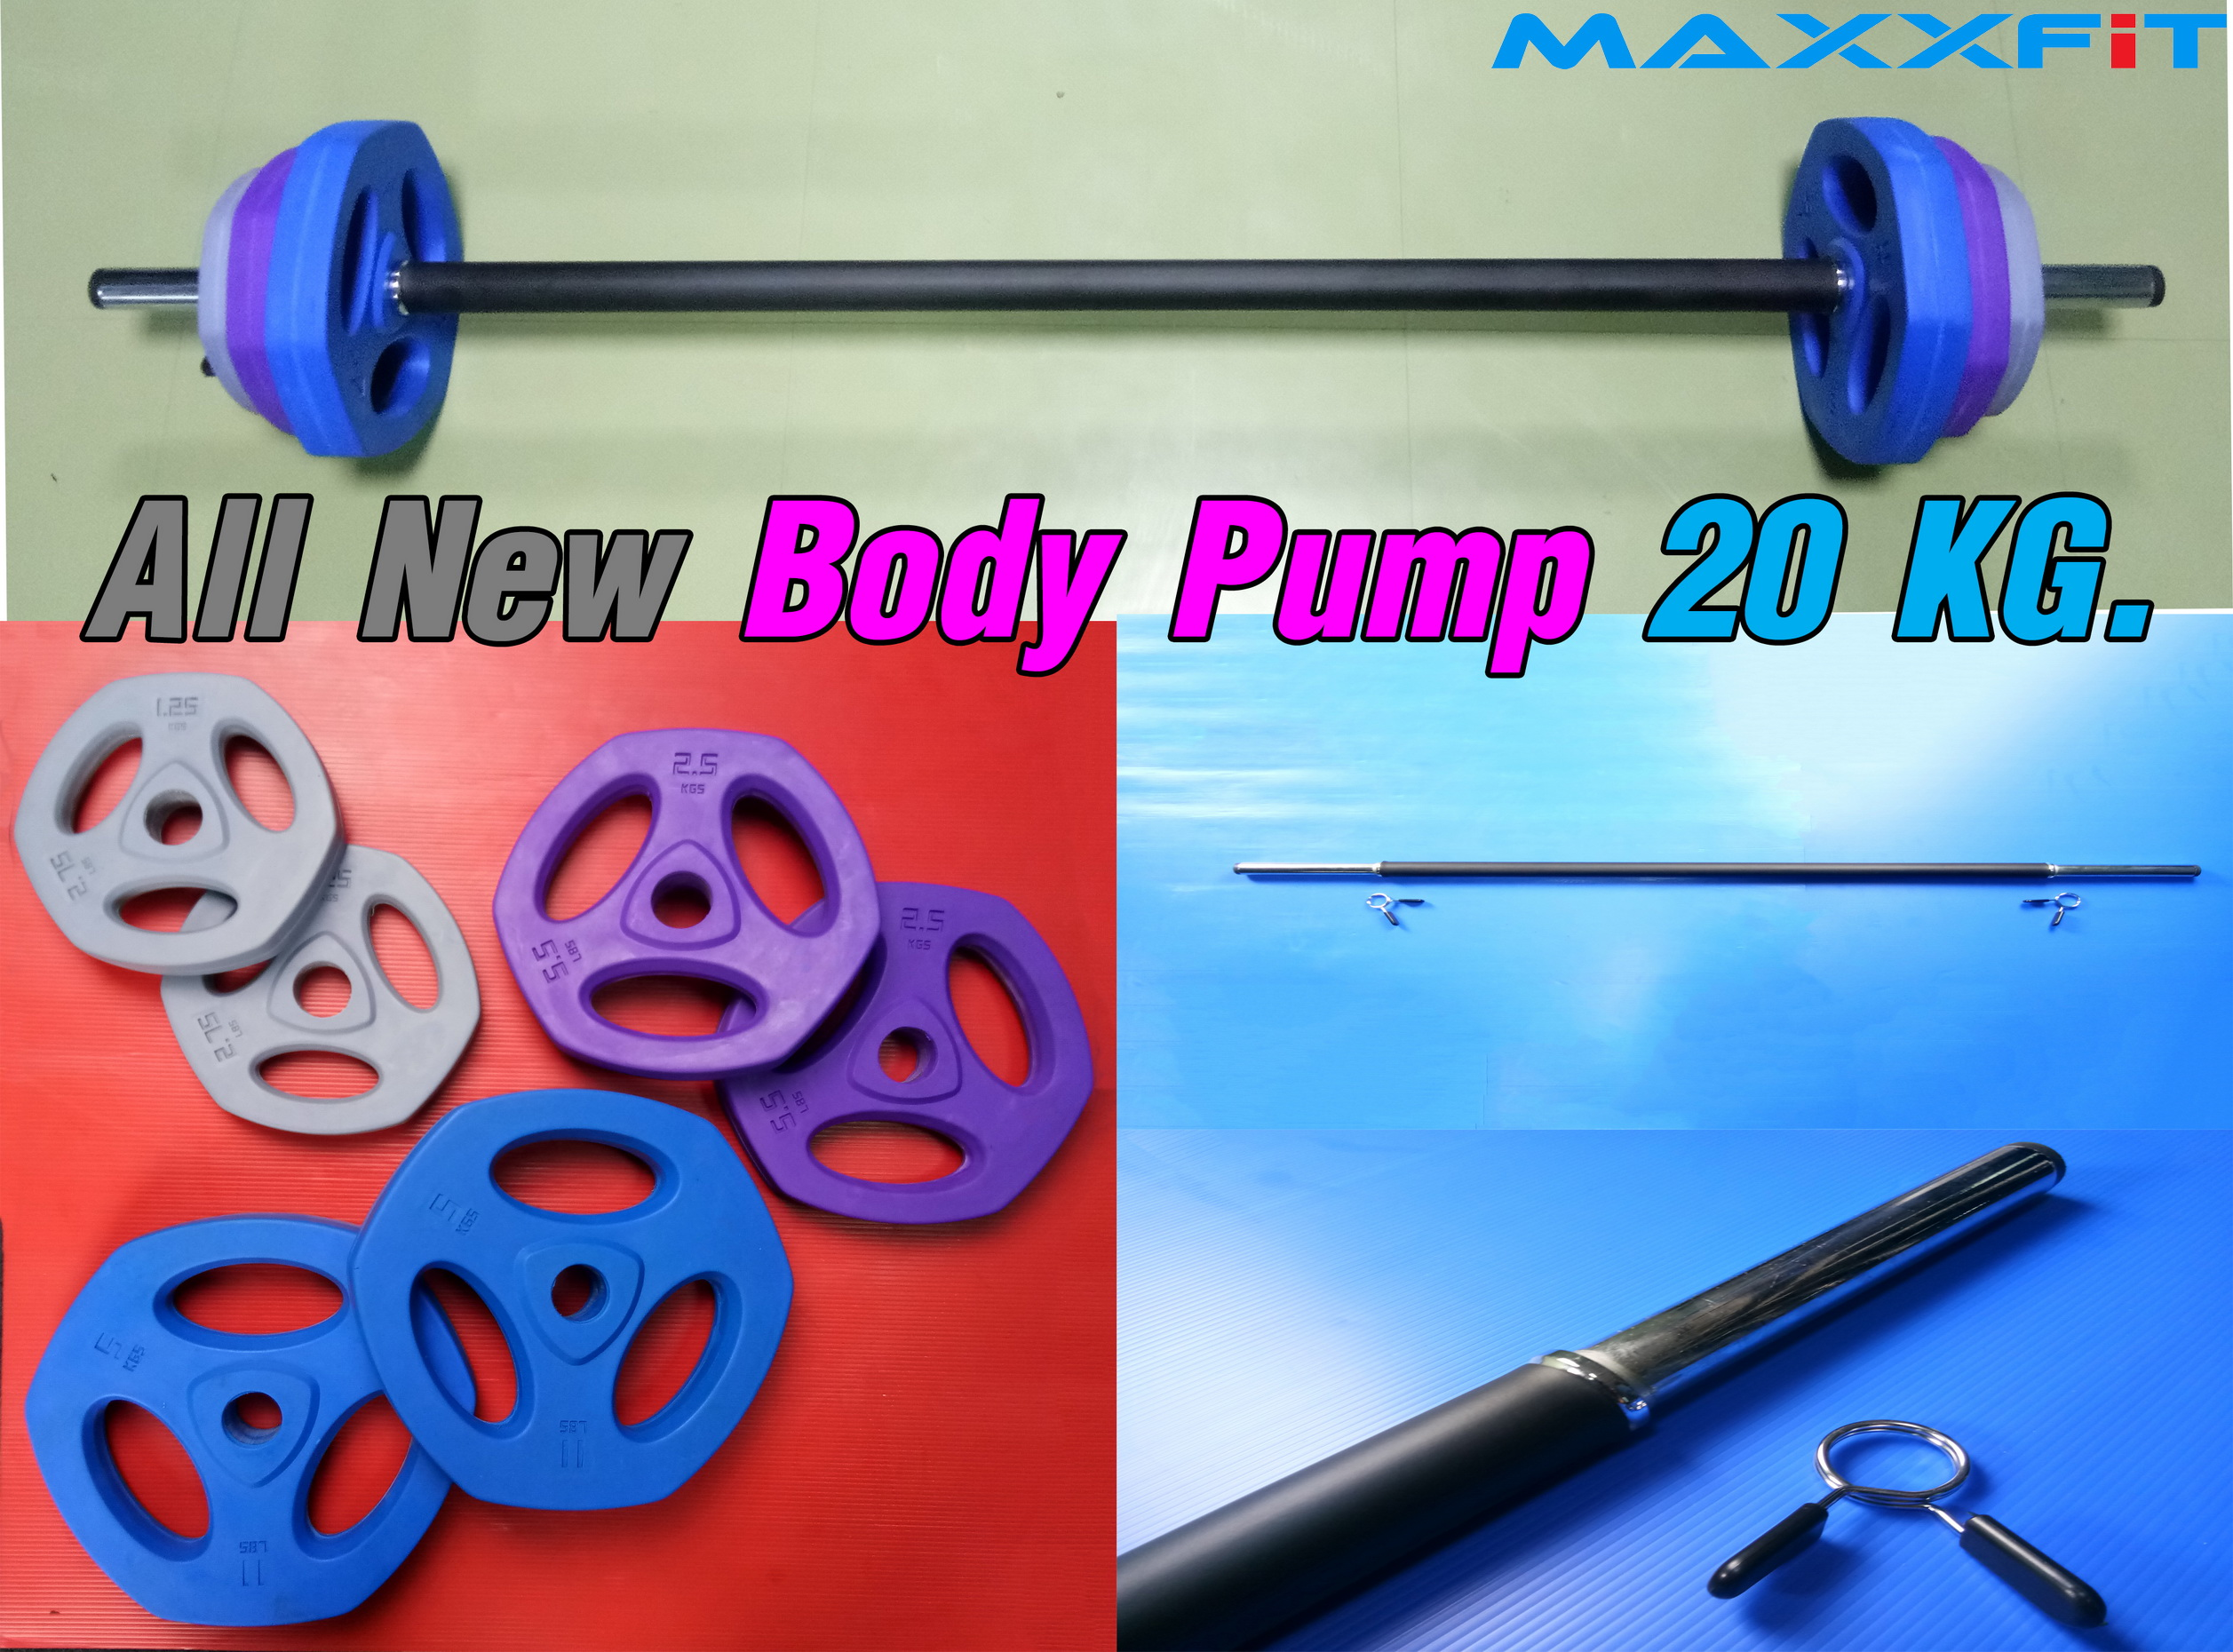 ขาย All New Body Pump 20 KG.